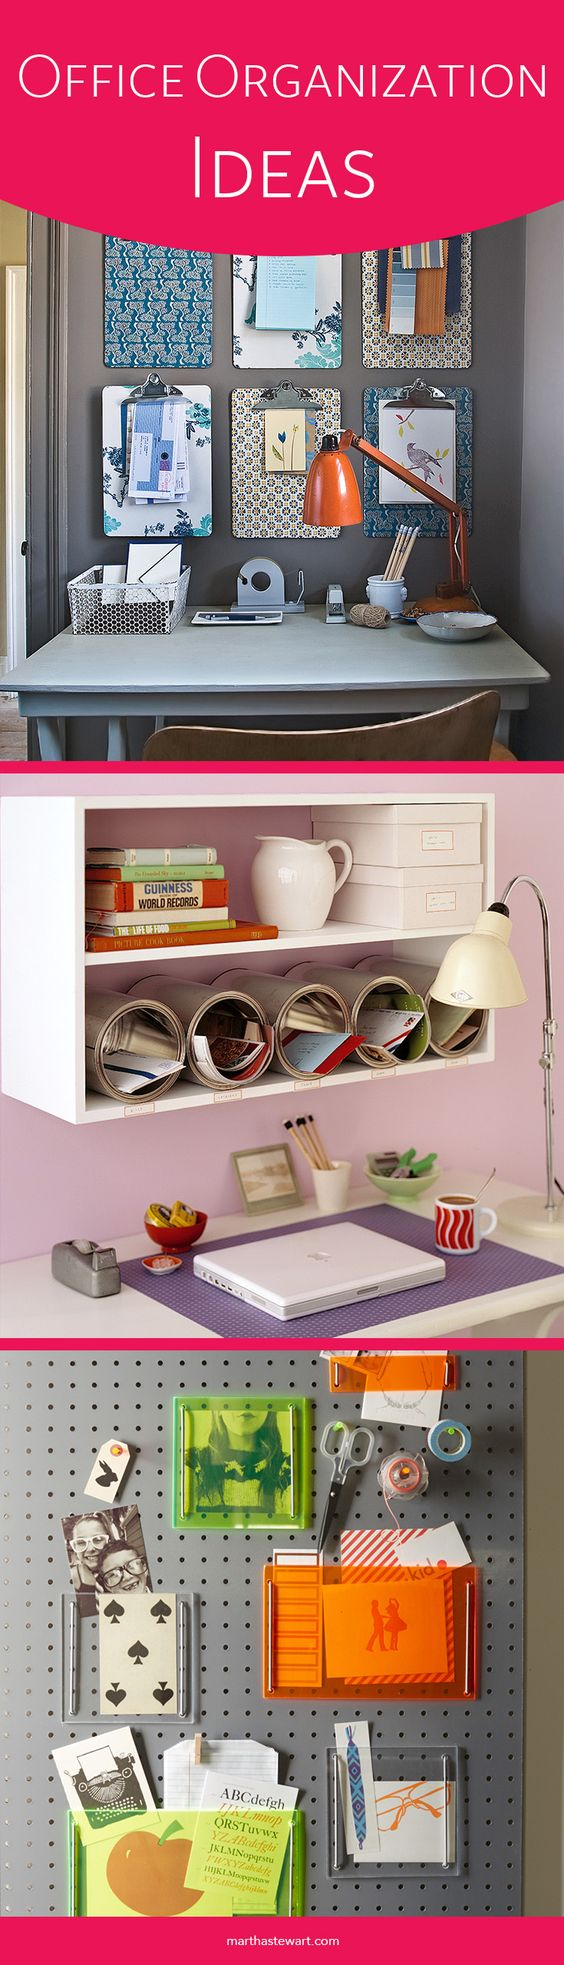 Office Organization Ideas | Martha Stewart Living: